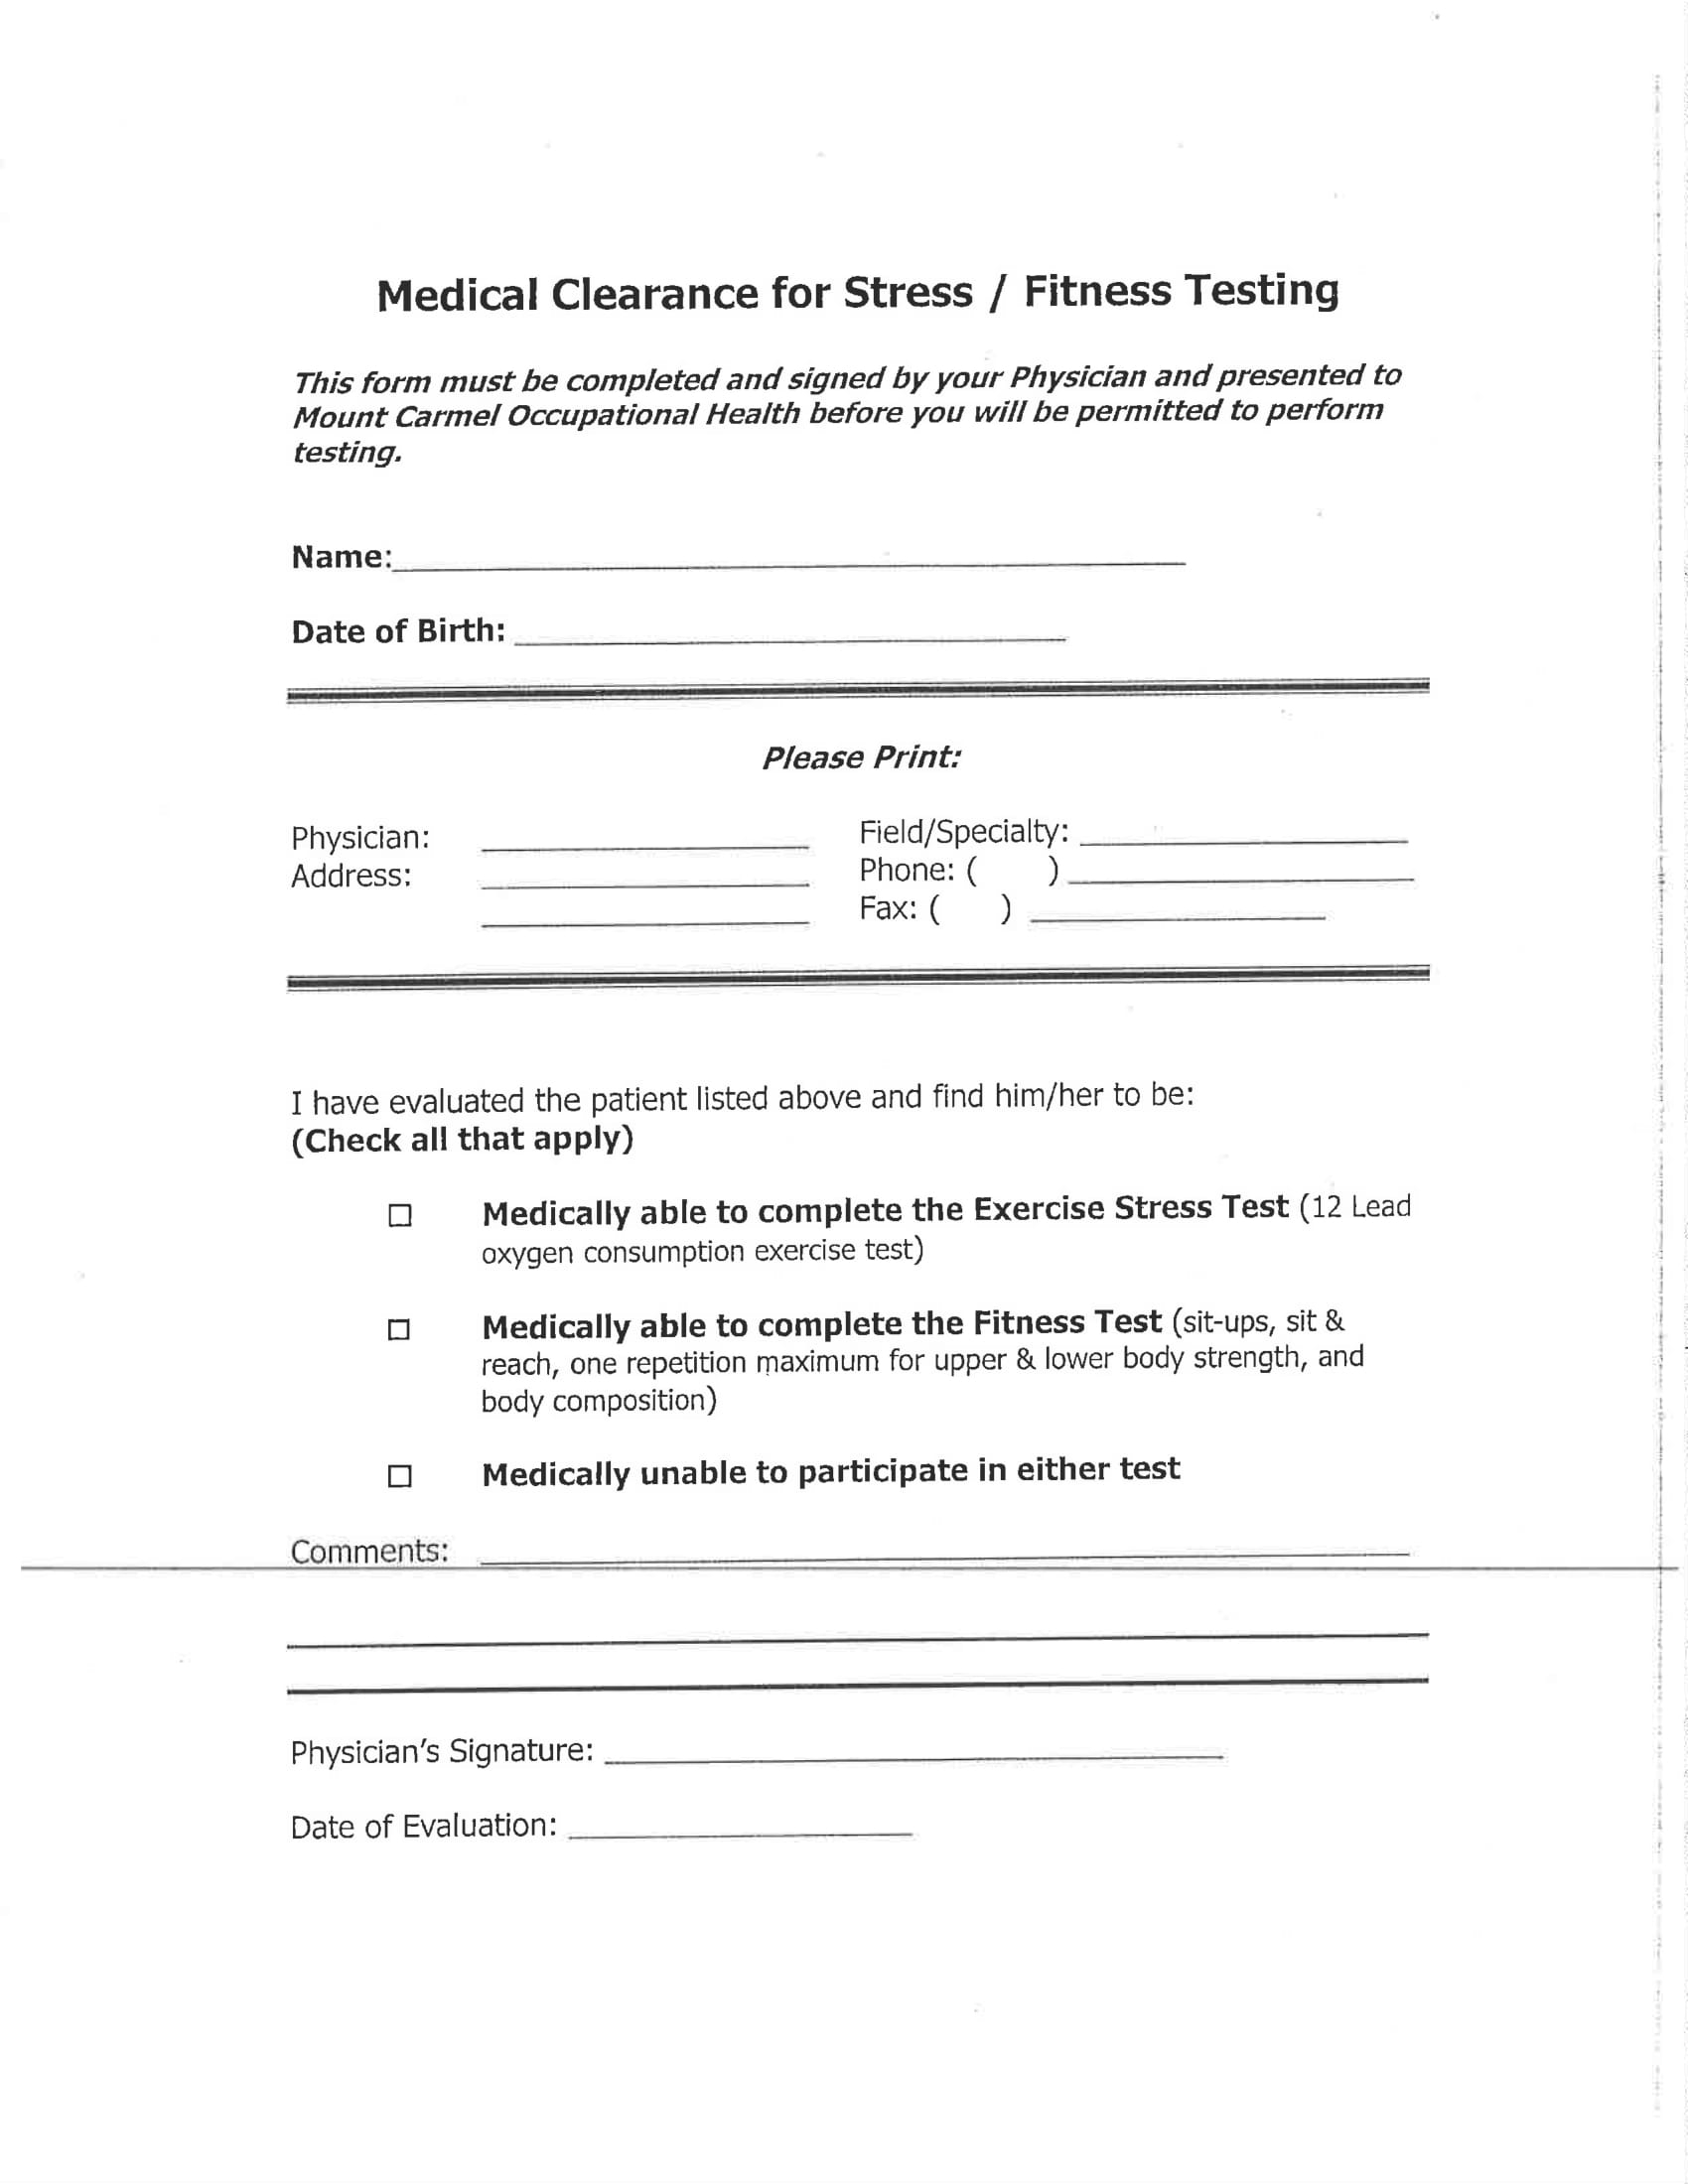 stress testing medical clearance form 1